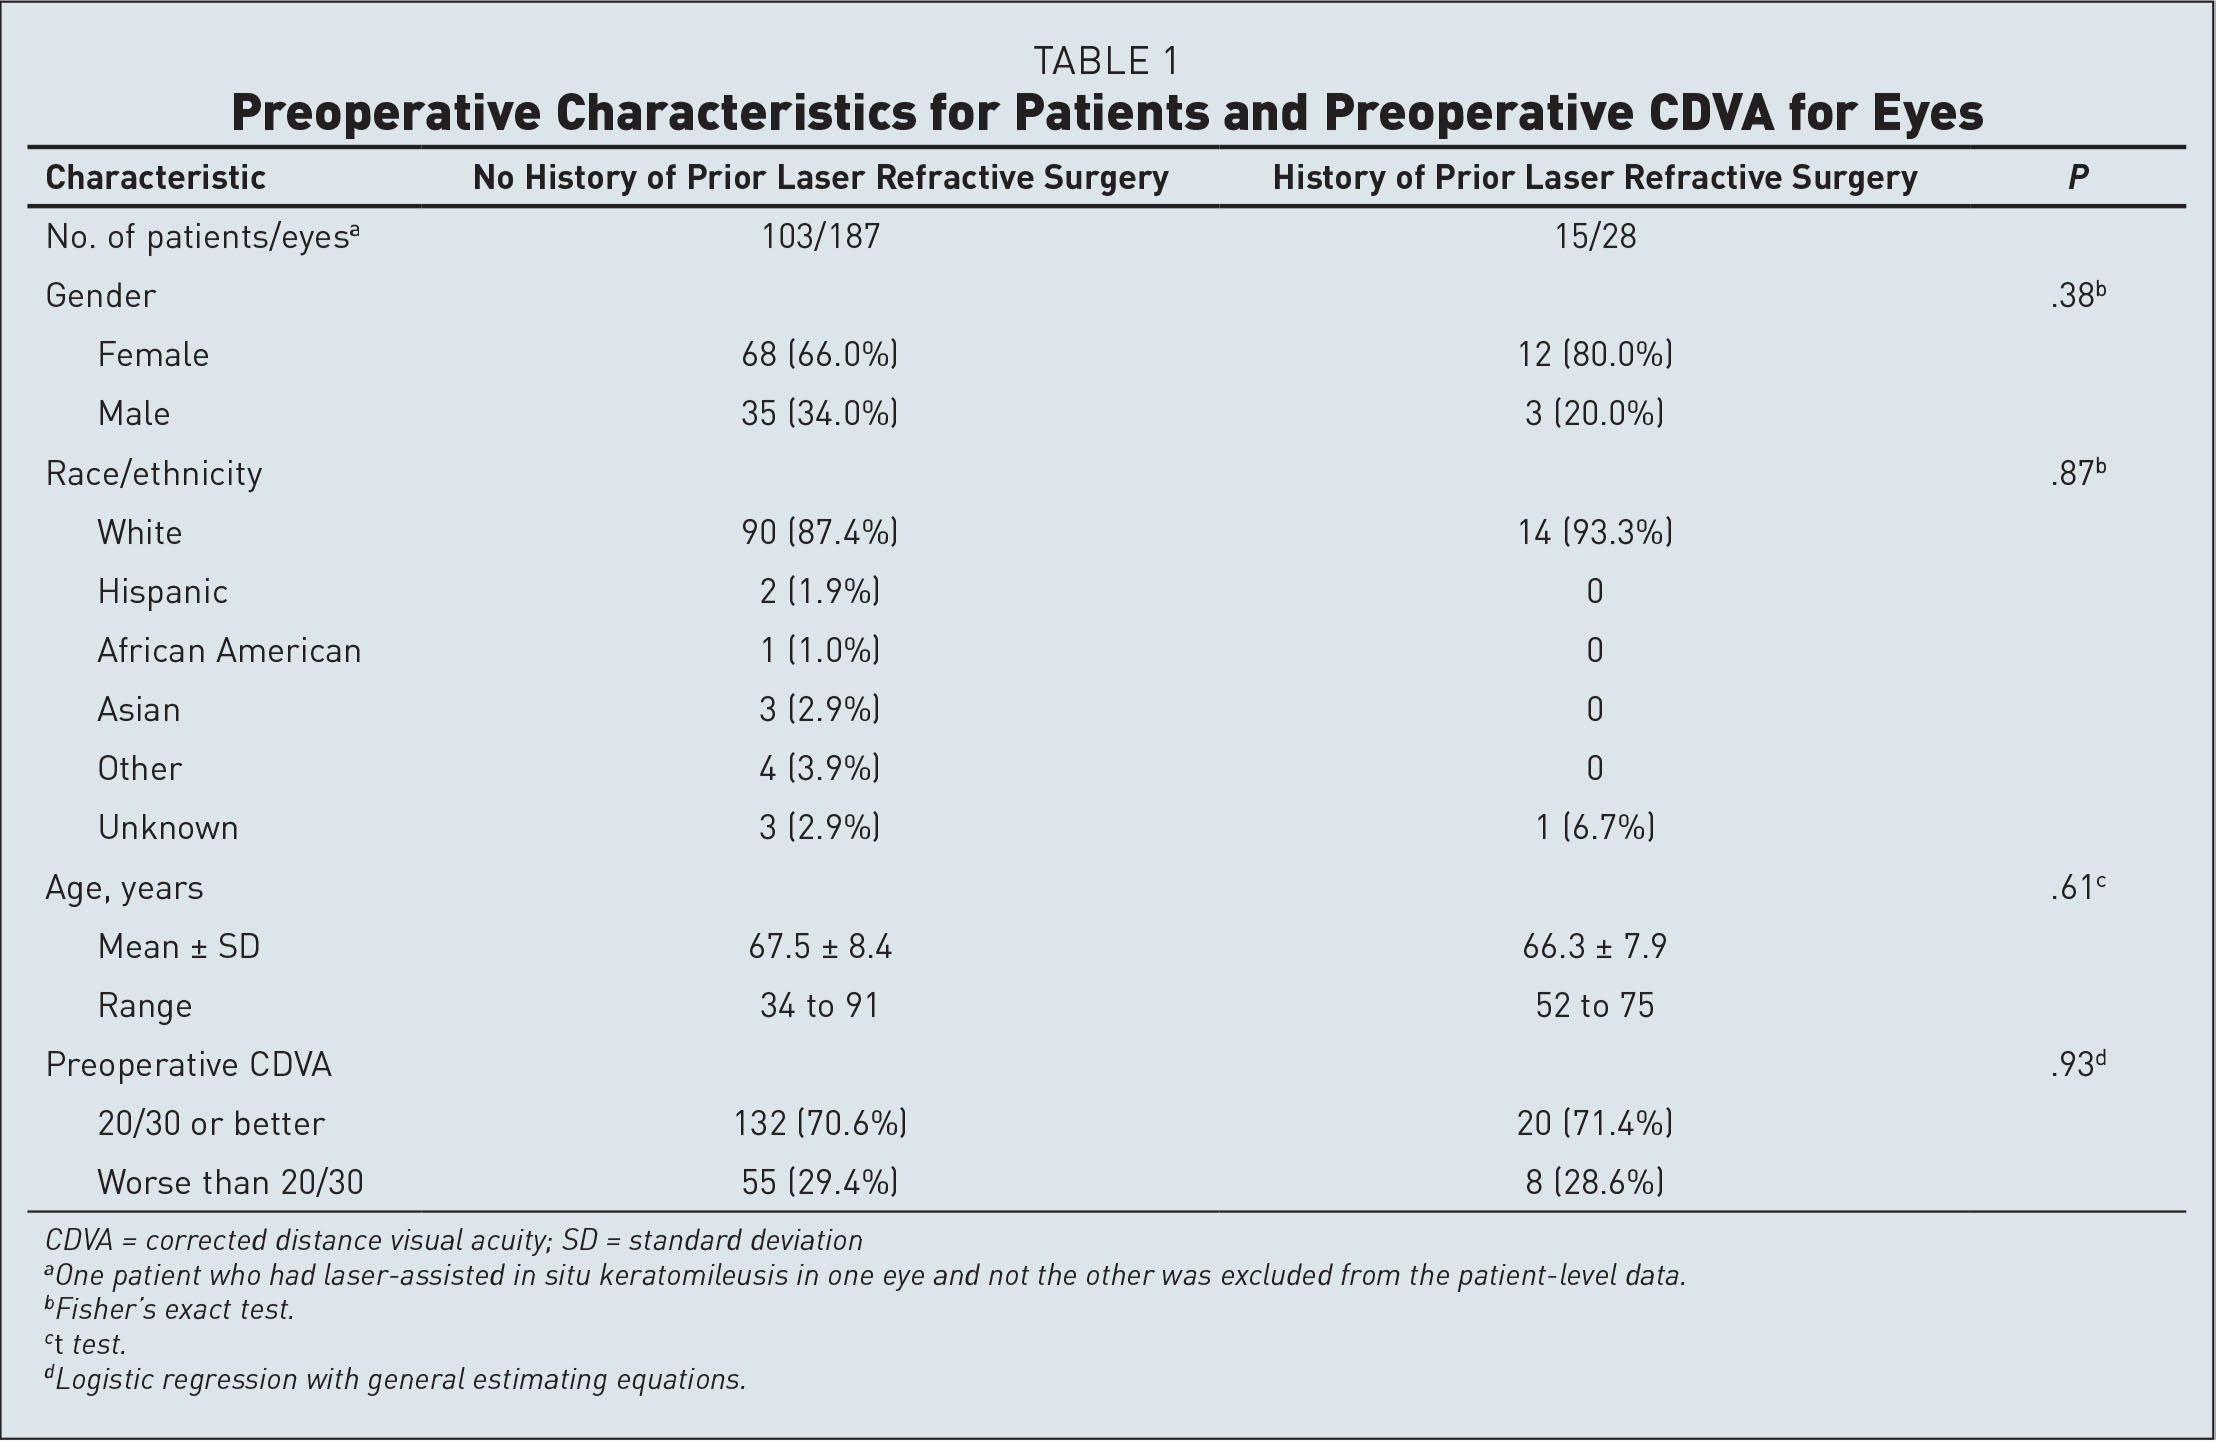 Preoperative Characteristics for Patients and Preoperative CDVA for Eyes